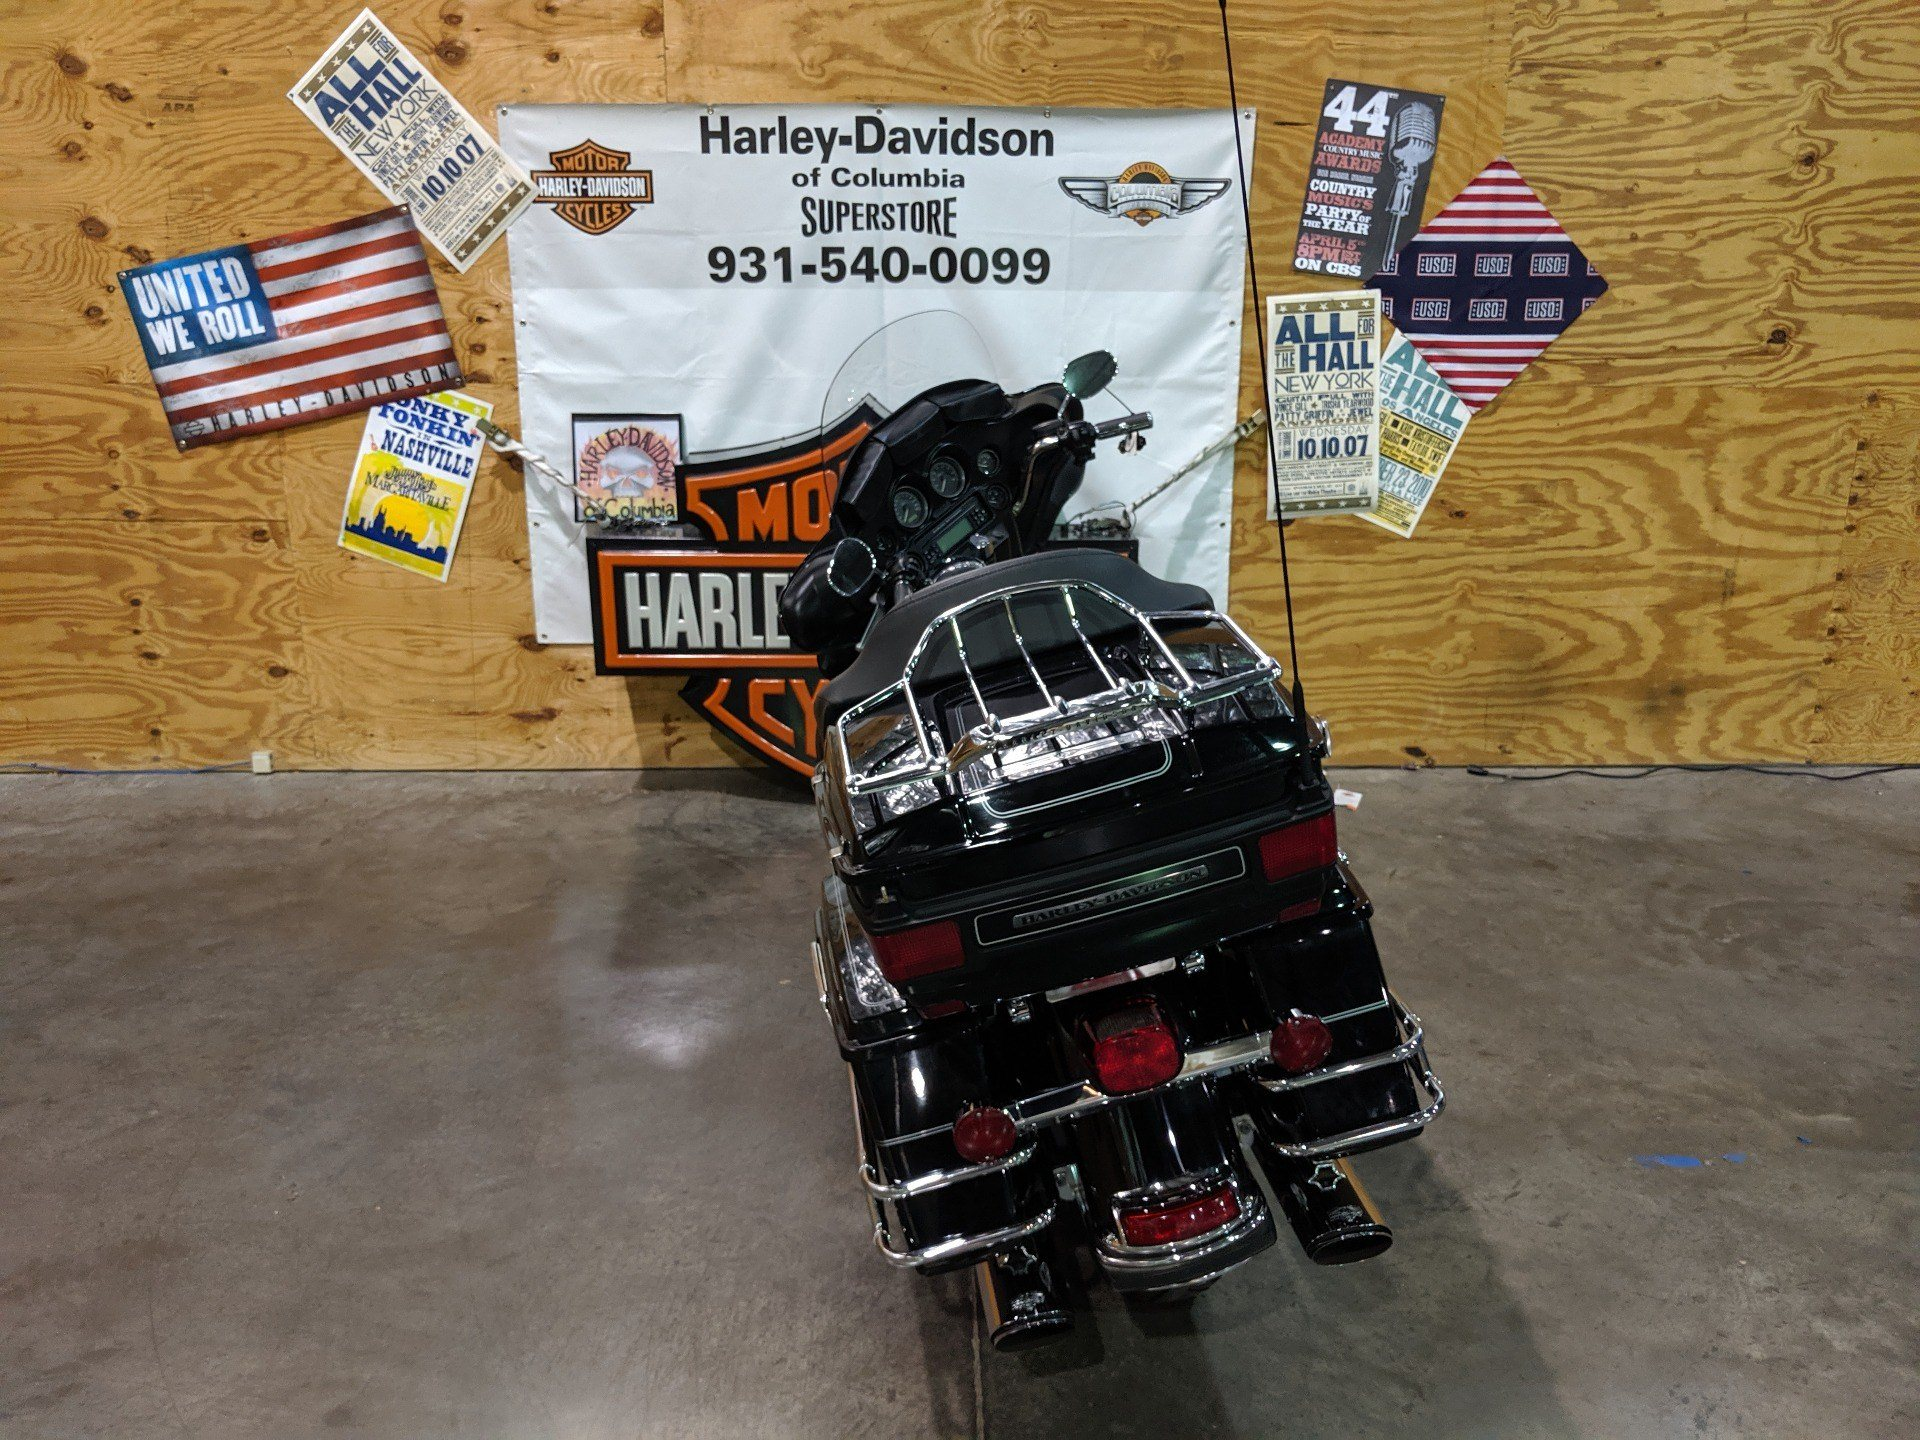 2013 Harley-Davidson FLHTCU in Columbia, Tennessee - Photo 7